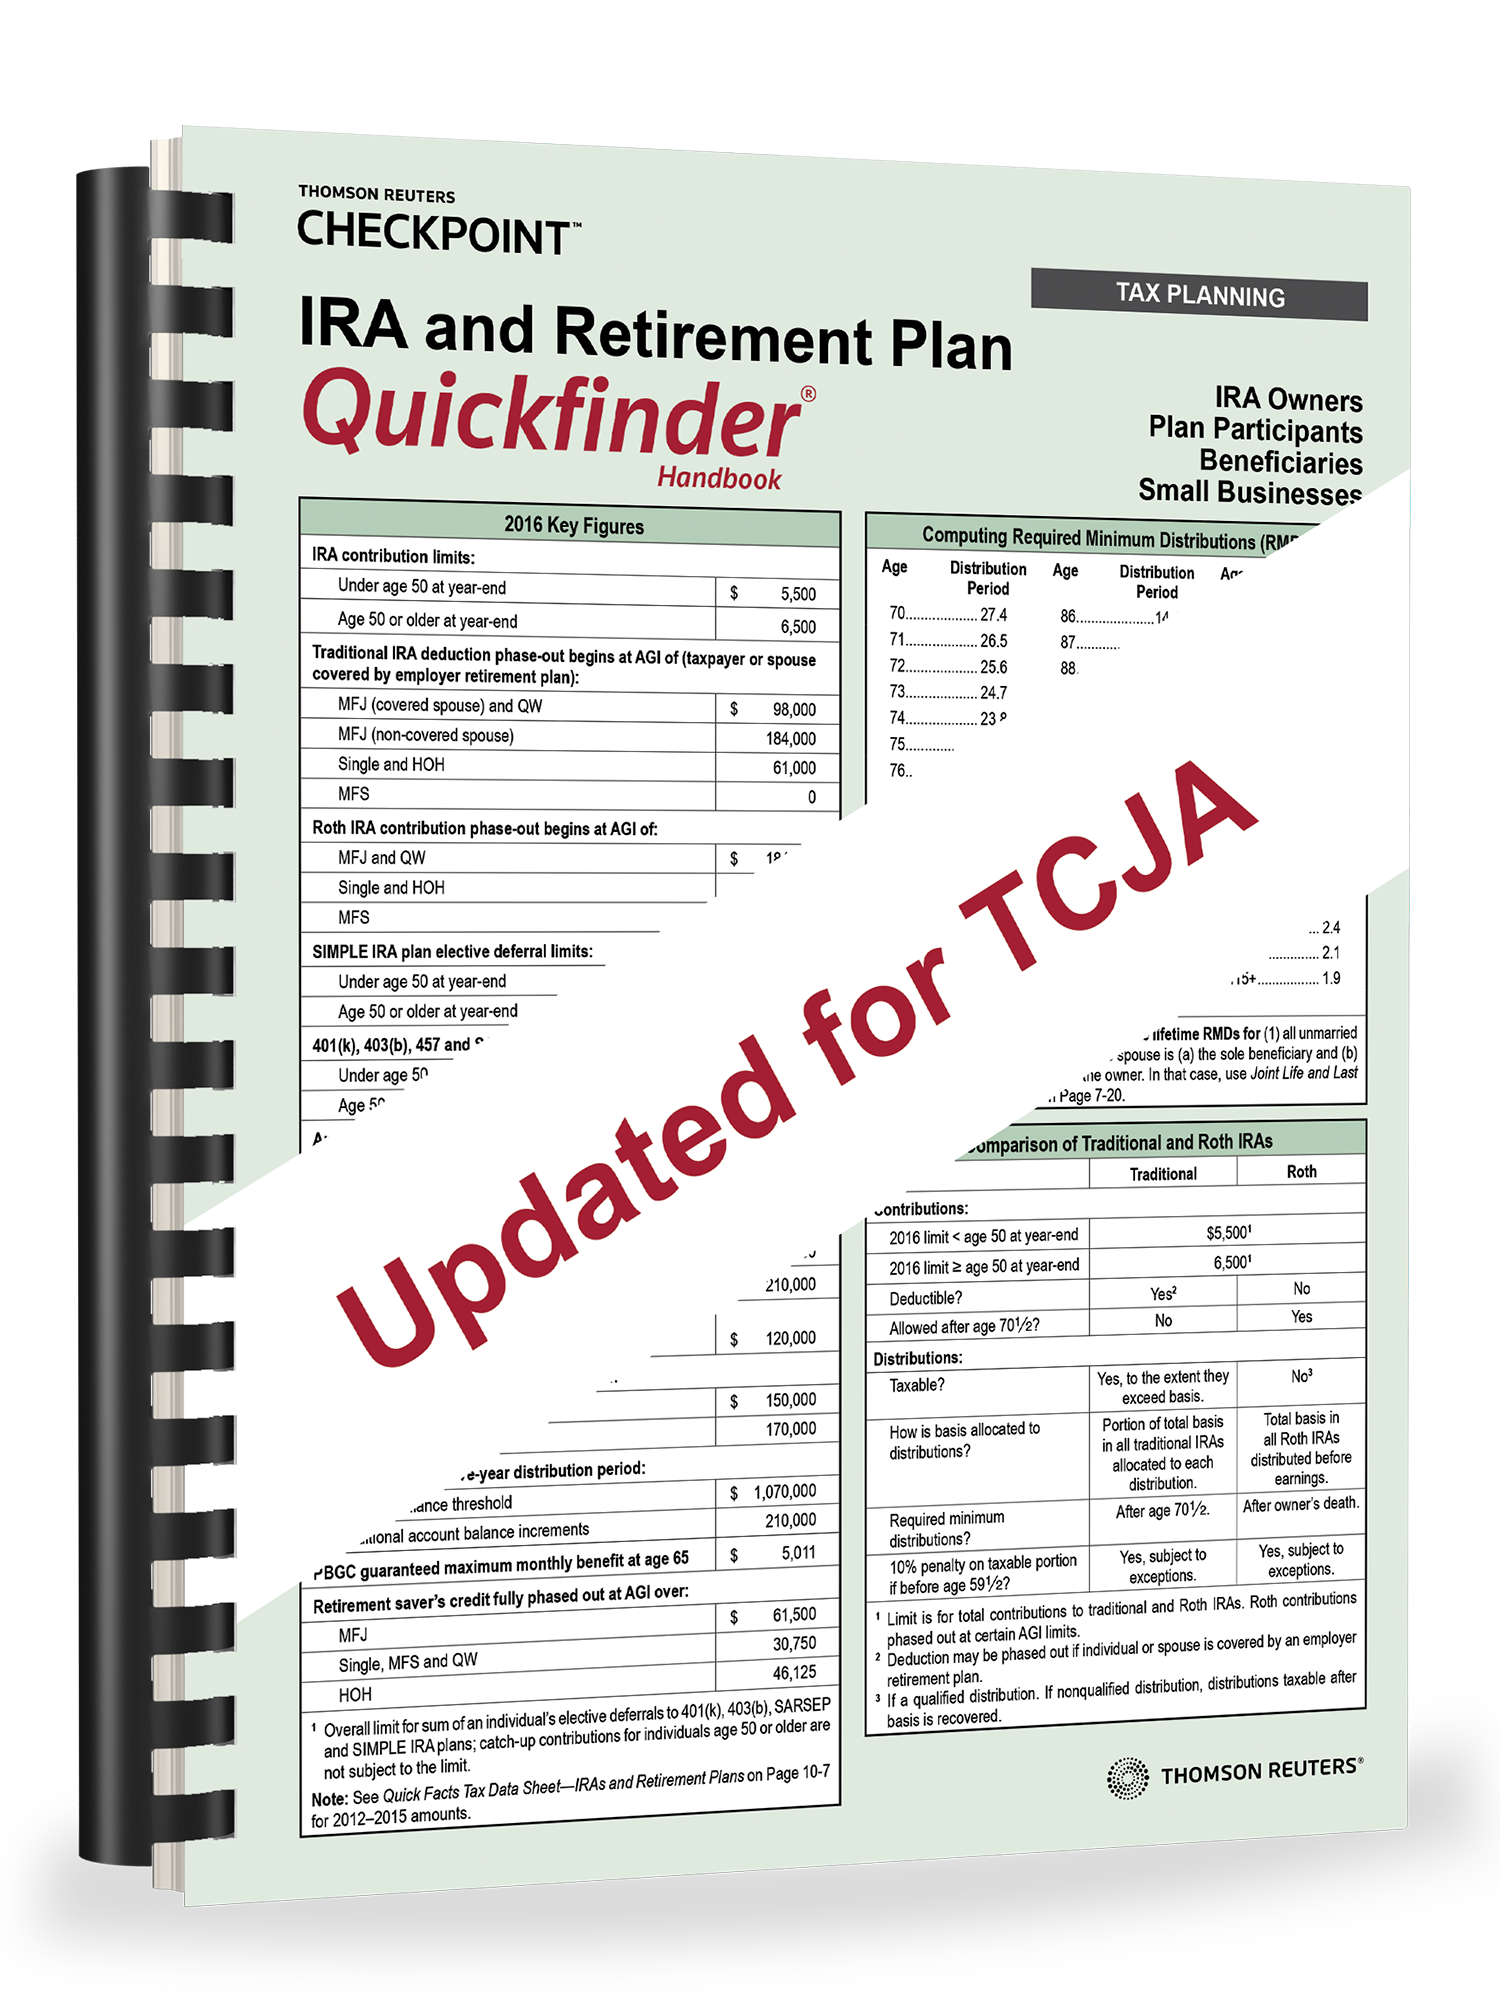 IRA and Retirement Plan Quickfinder Handbook (2018) – #3818